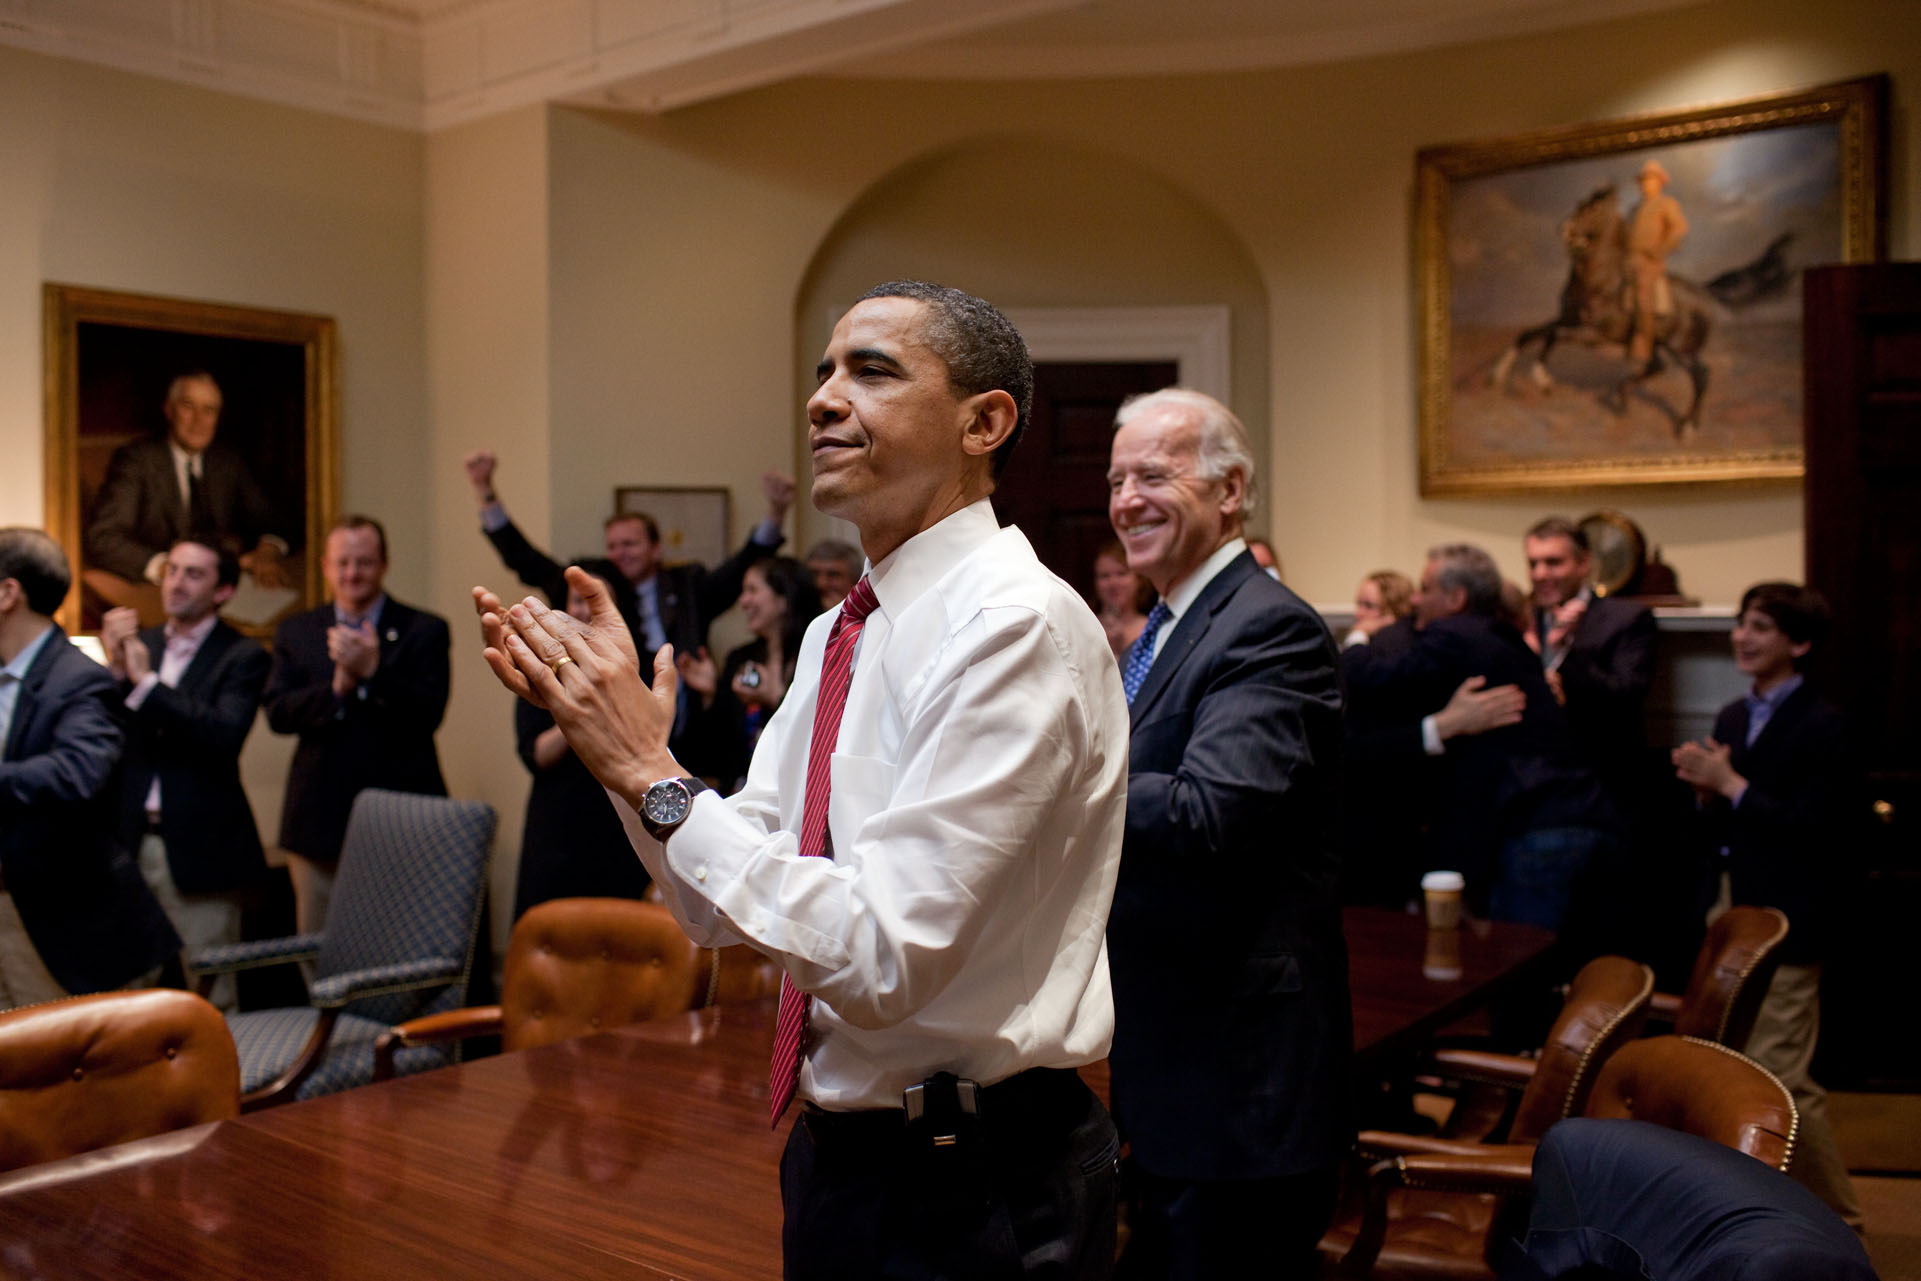 The President Celebrates Alongside The Vice President and Staff as Health Reform Passes